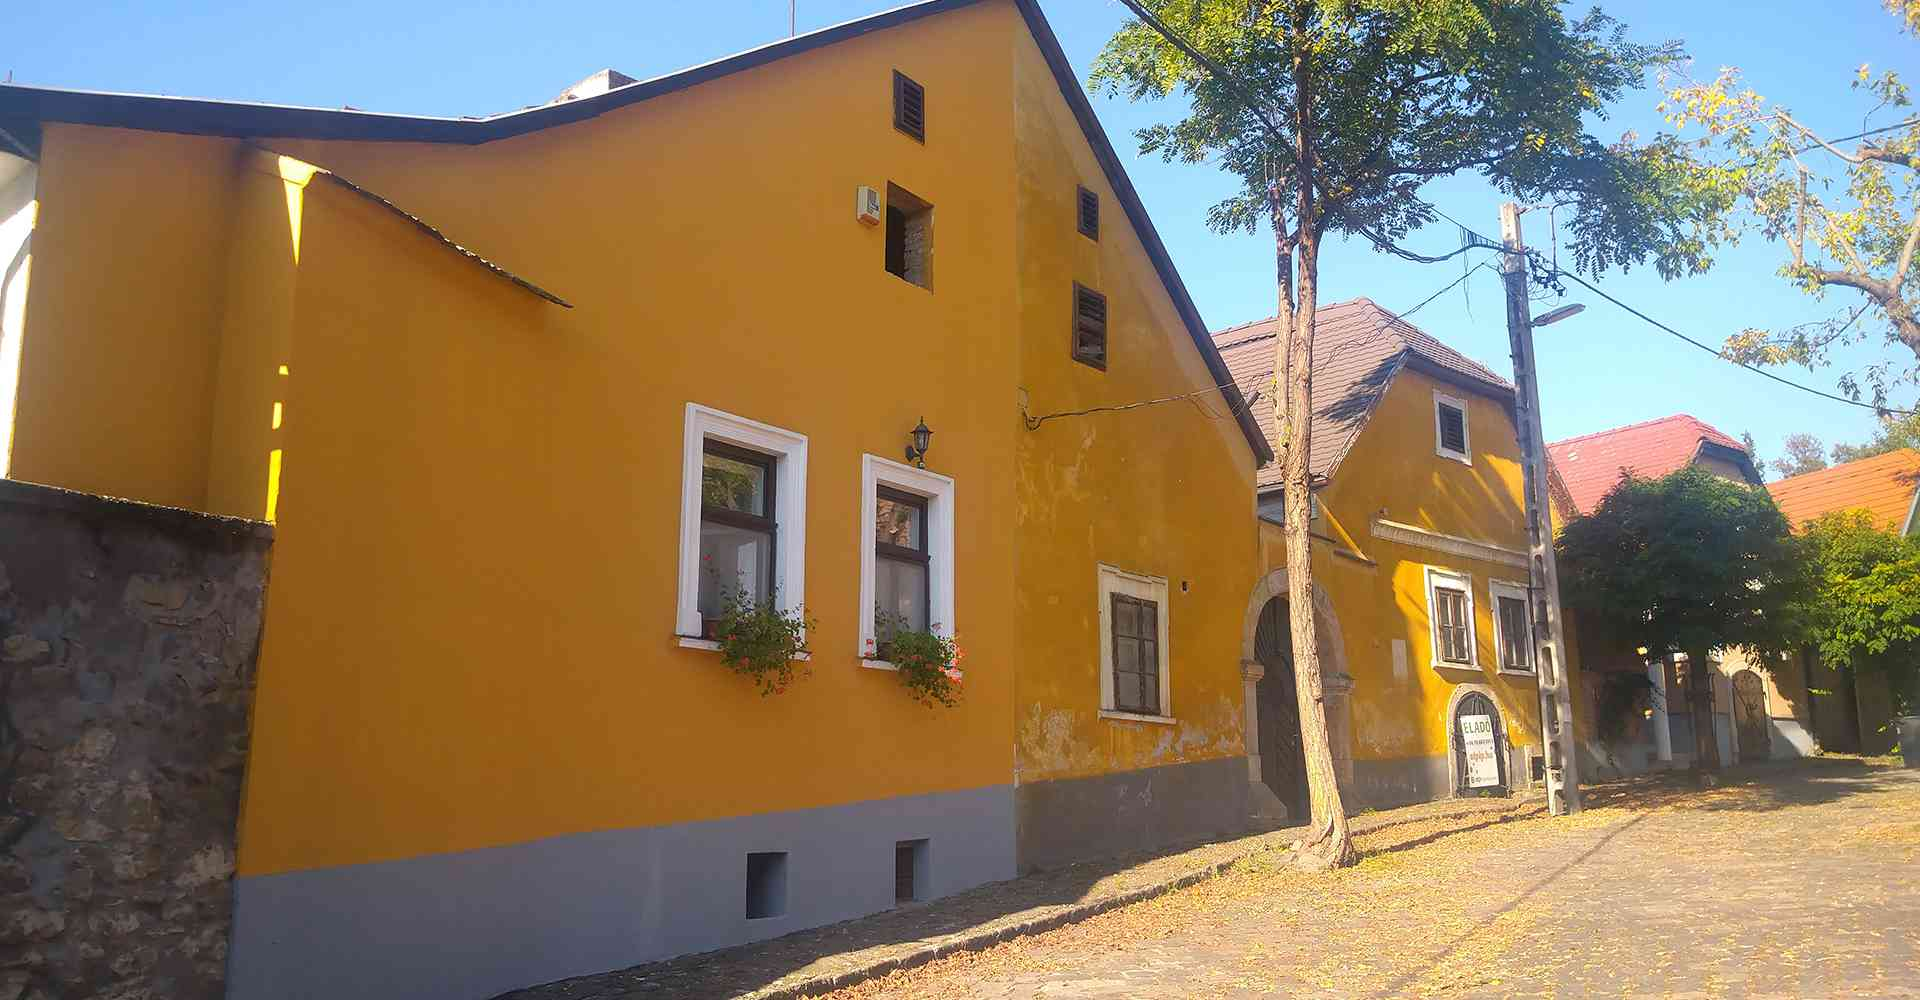 Szentendre_Őri-Art_Gallery_H7-House_of__RabRaby